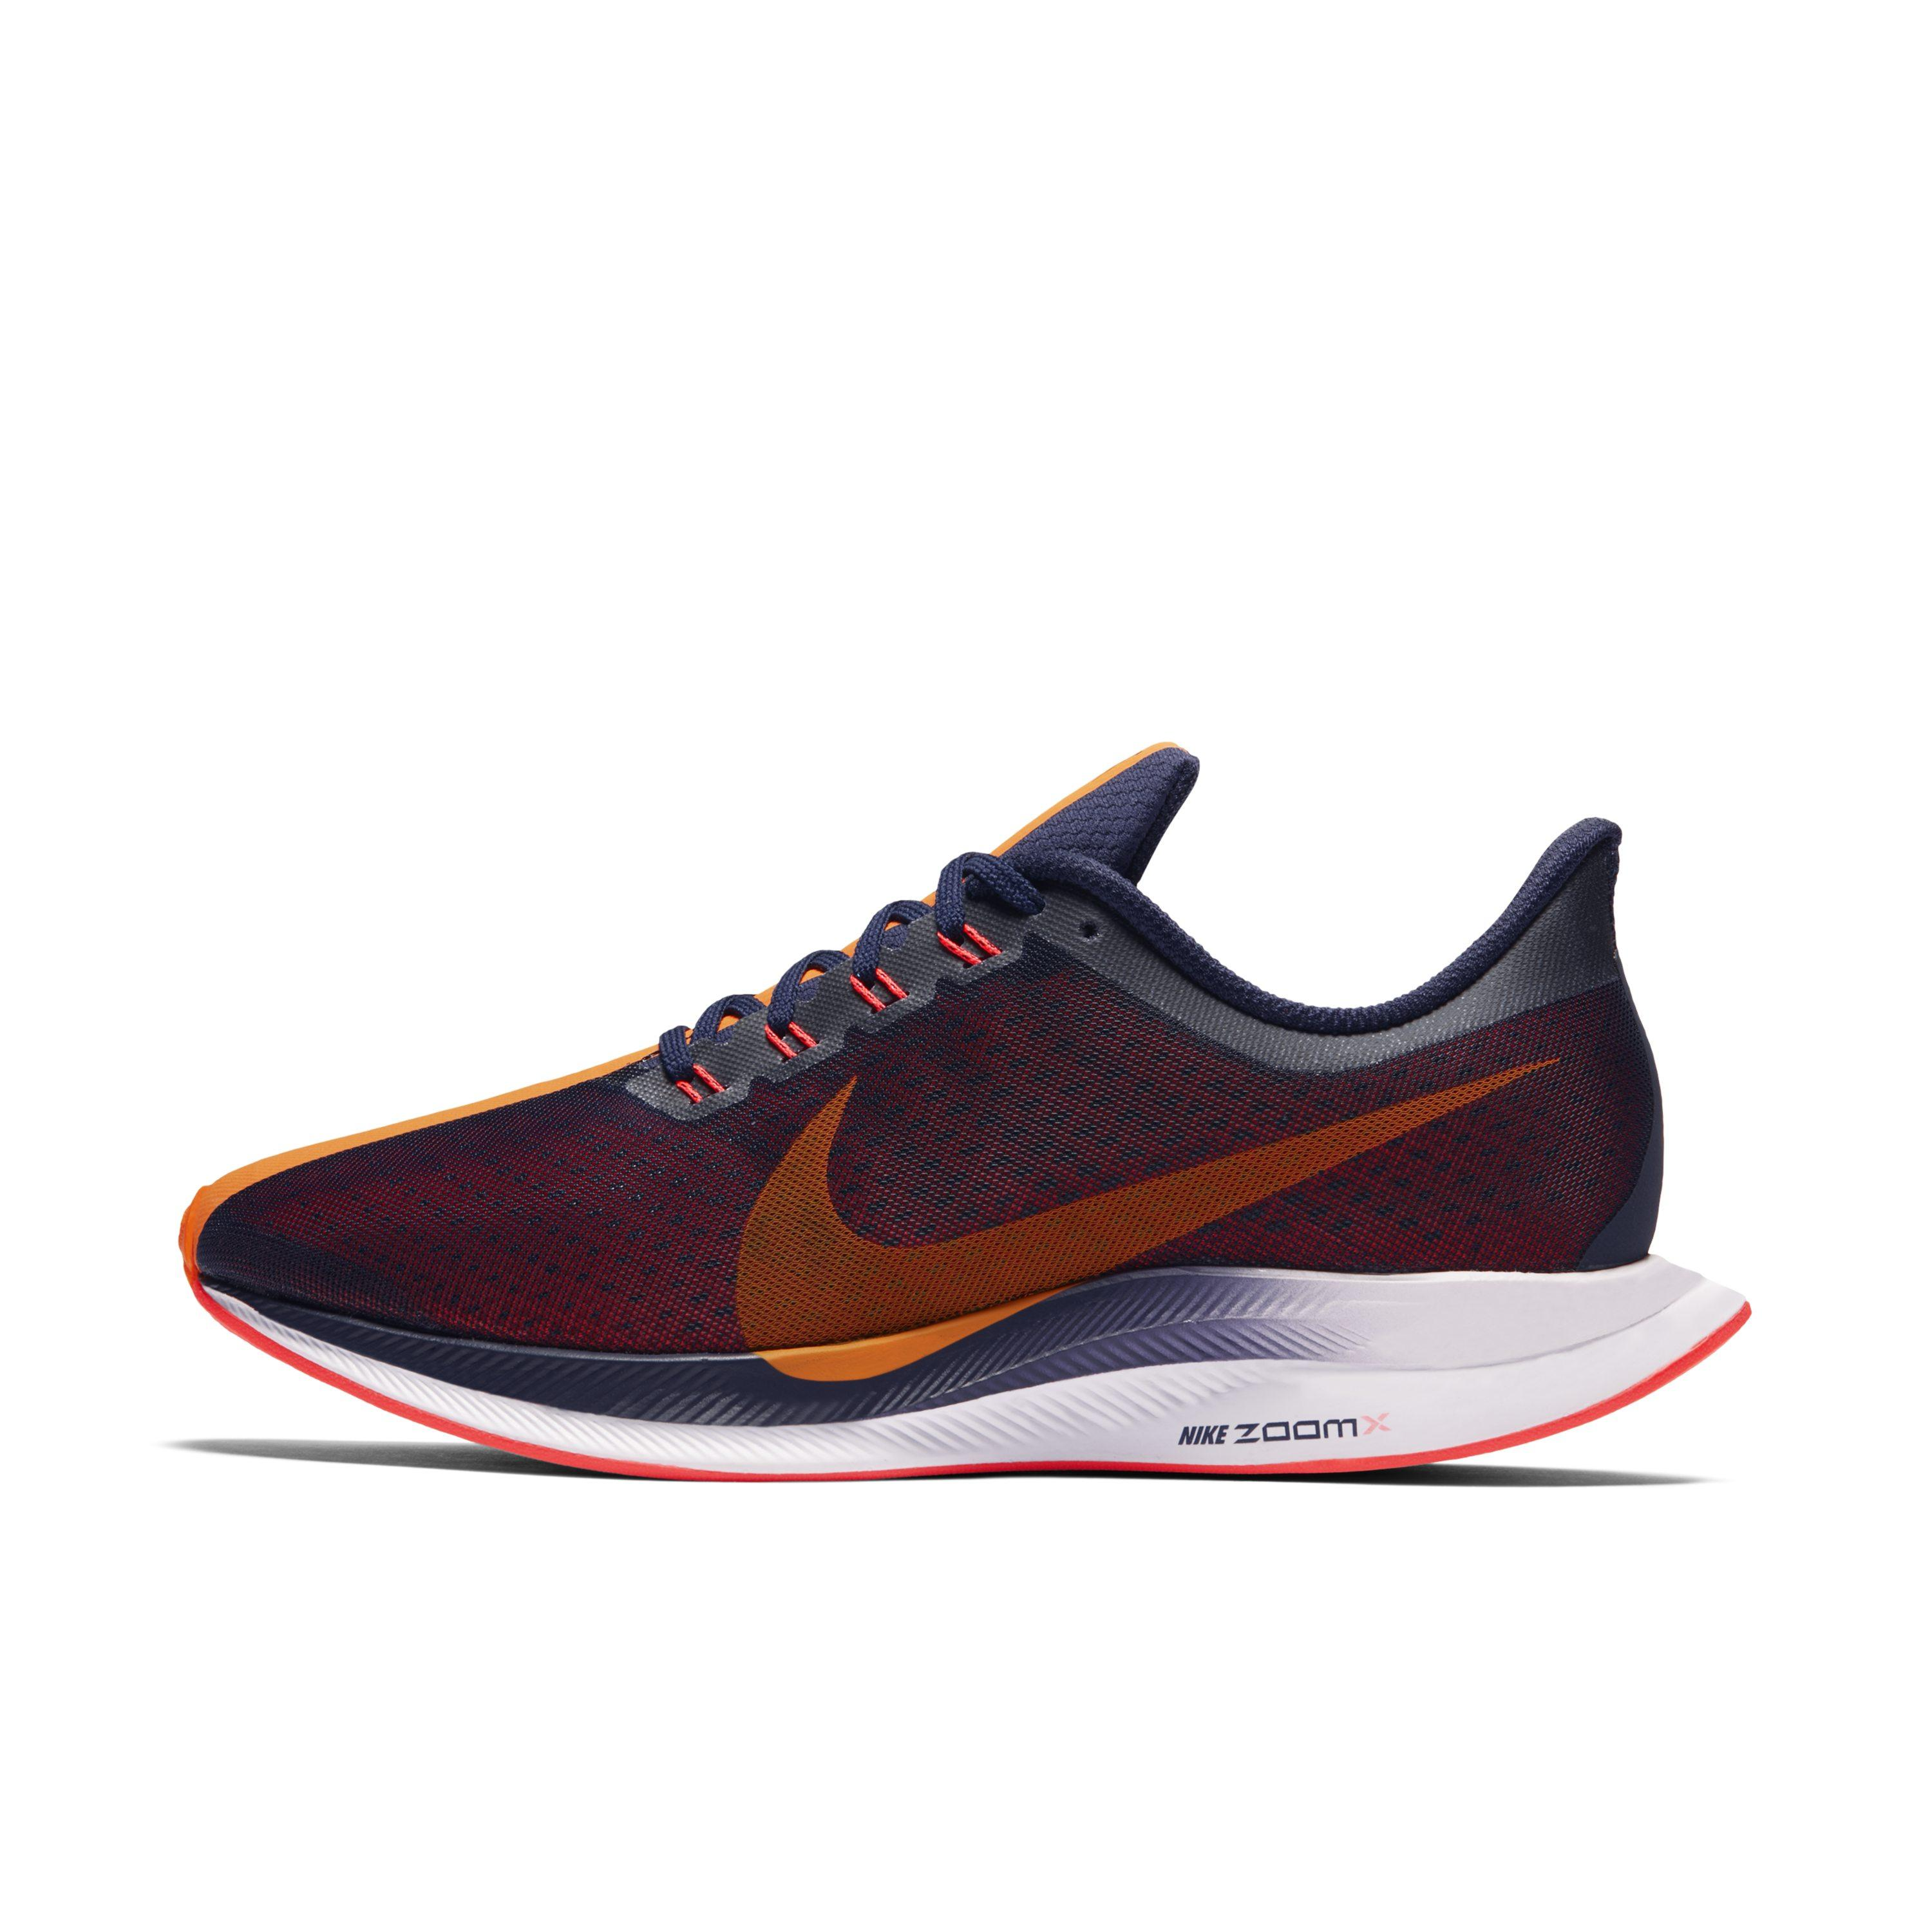 8ce5e93445e0f Nike Zoom Pegasus 35 Turbo Running Shoes in Blue - Save 30% - Lyst